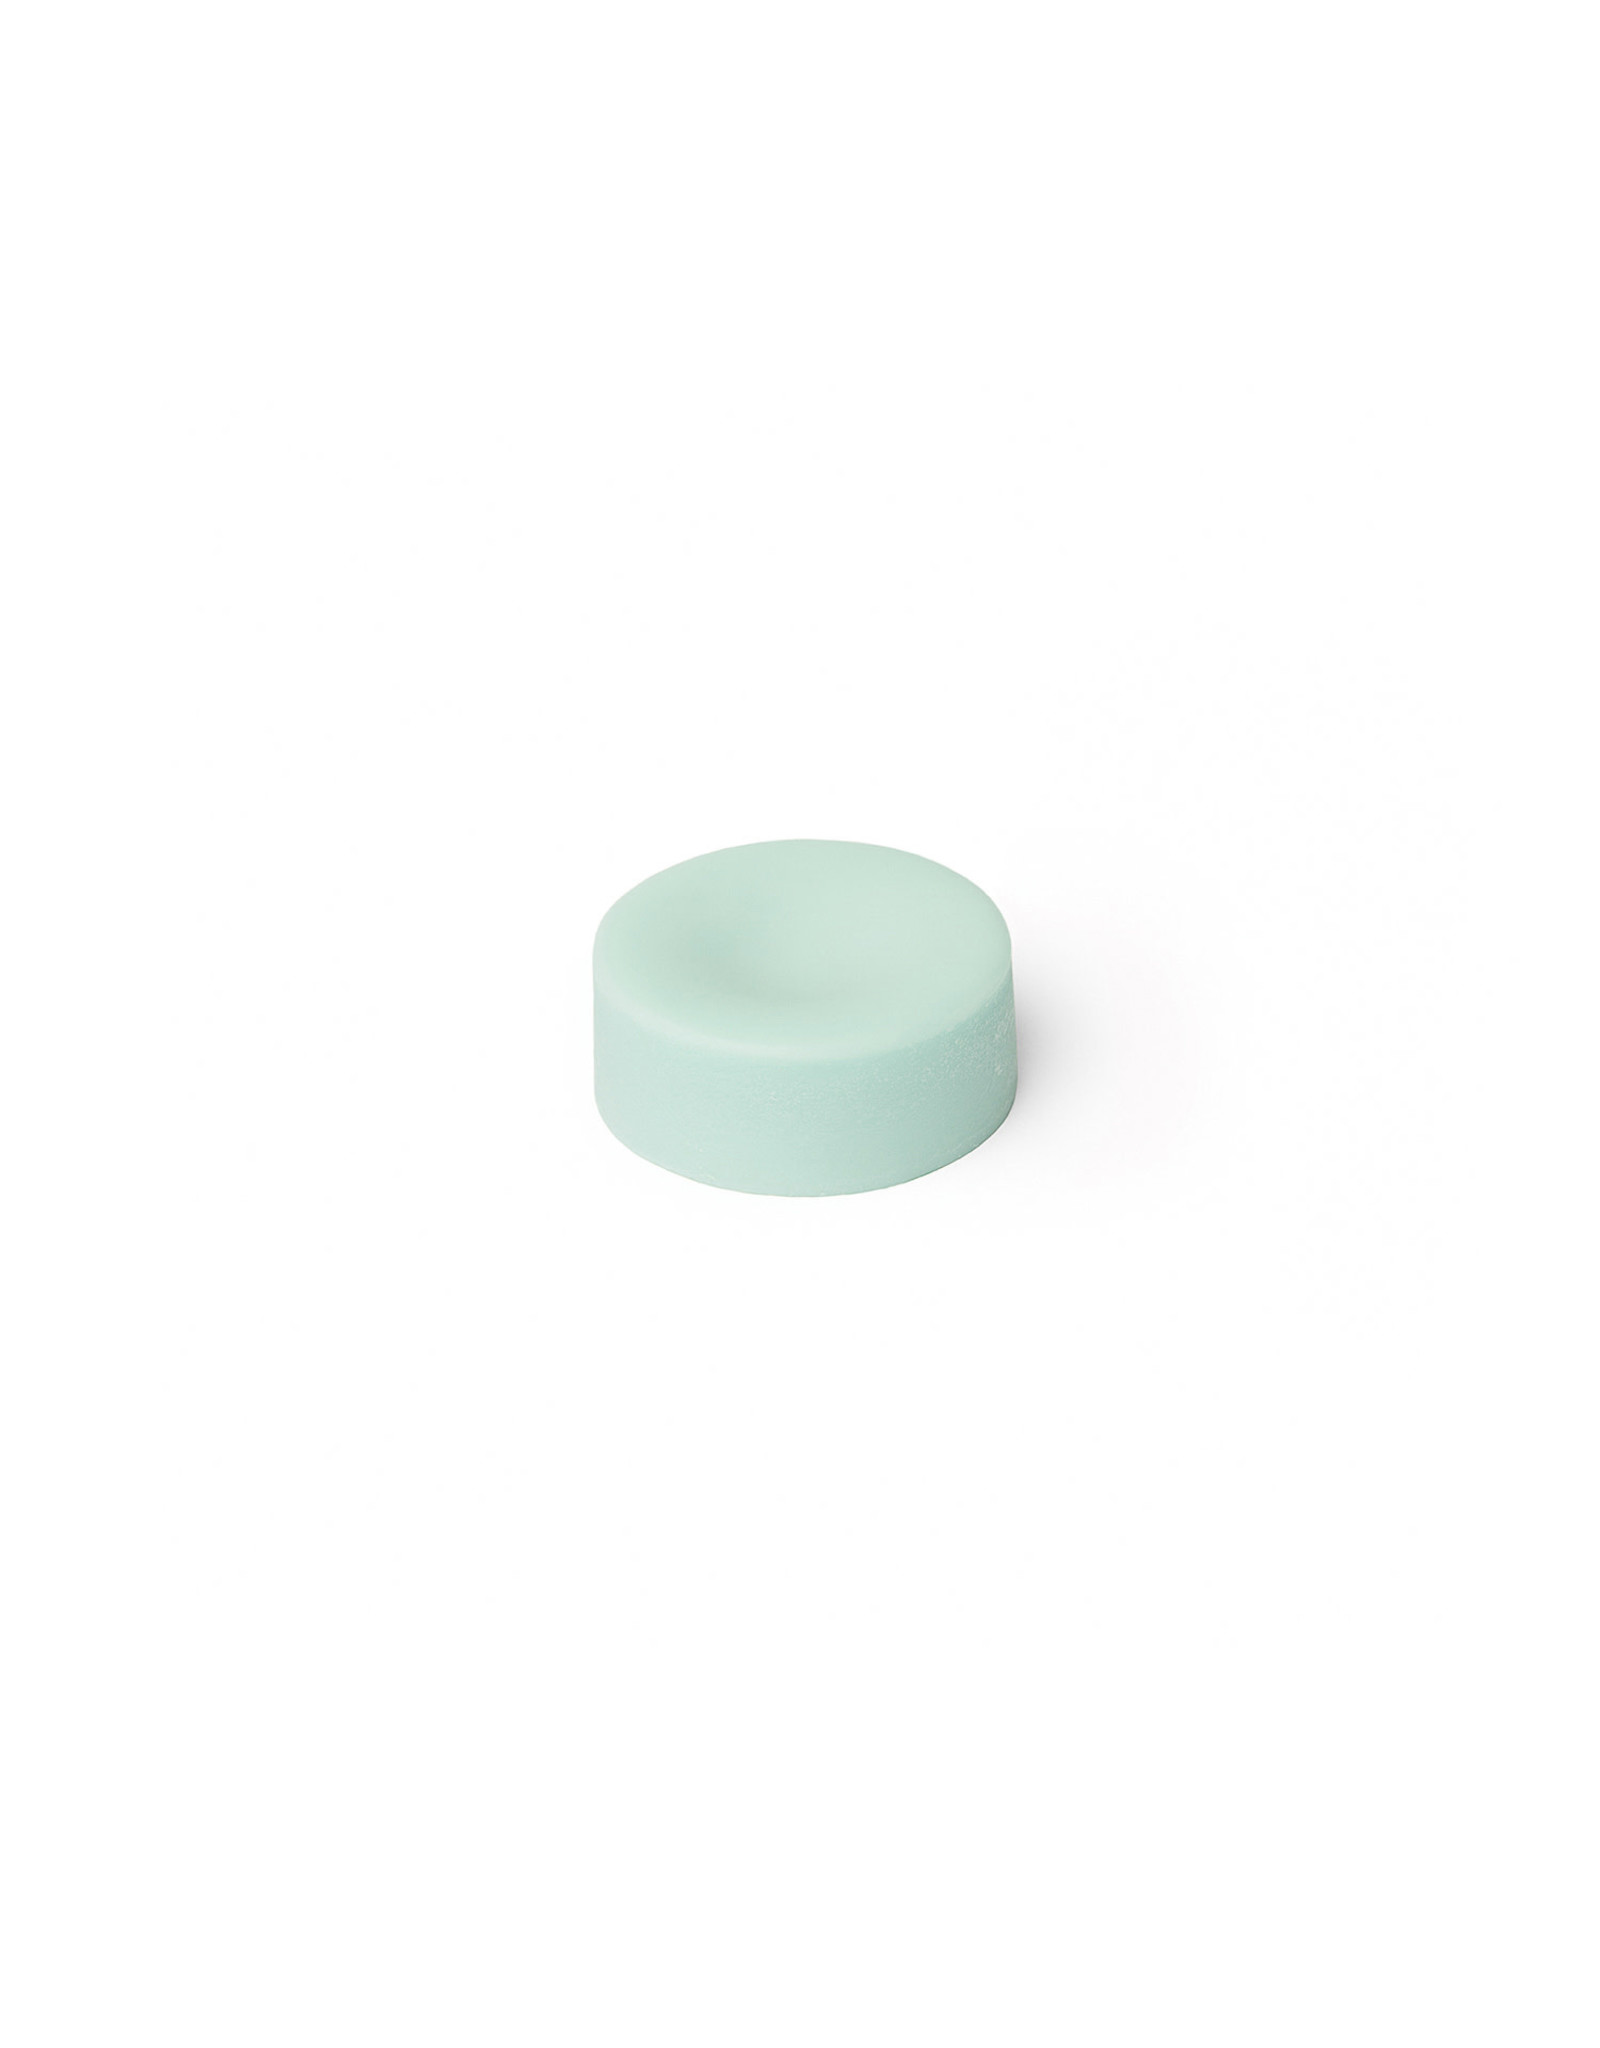 Unwrapped Life The Stimulator Conditioner Bar